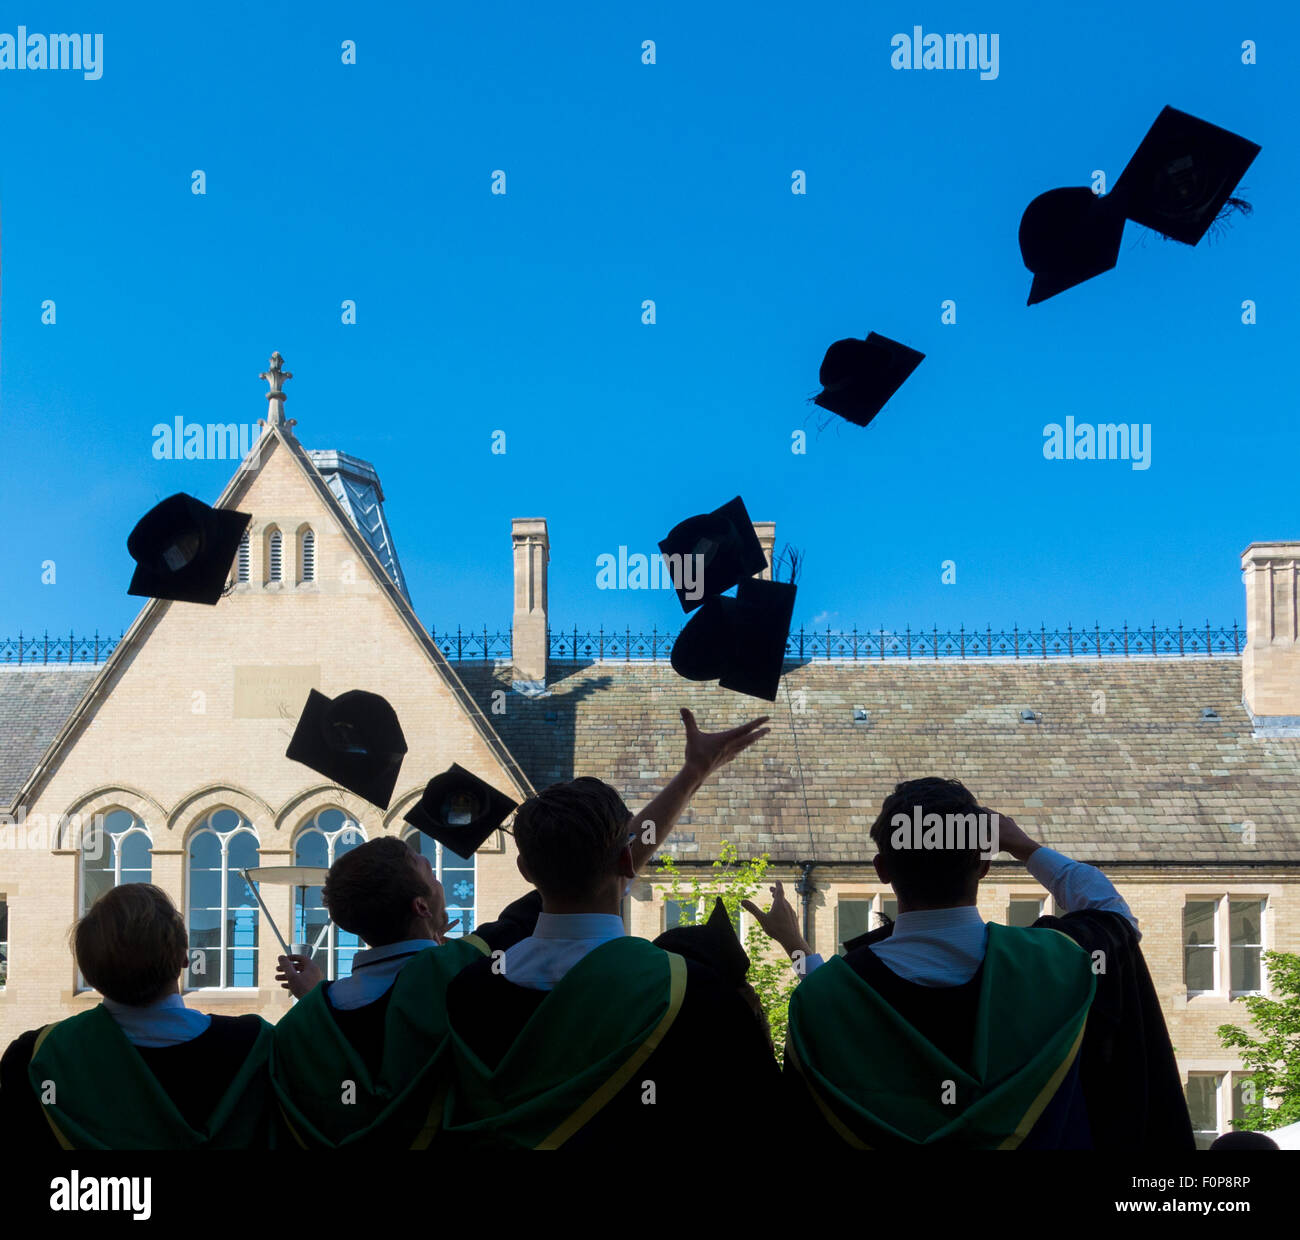 Rear view of new Graduates celebrating by throwing mortar boards in air on graduation day - Stock Image